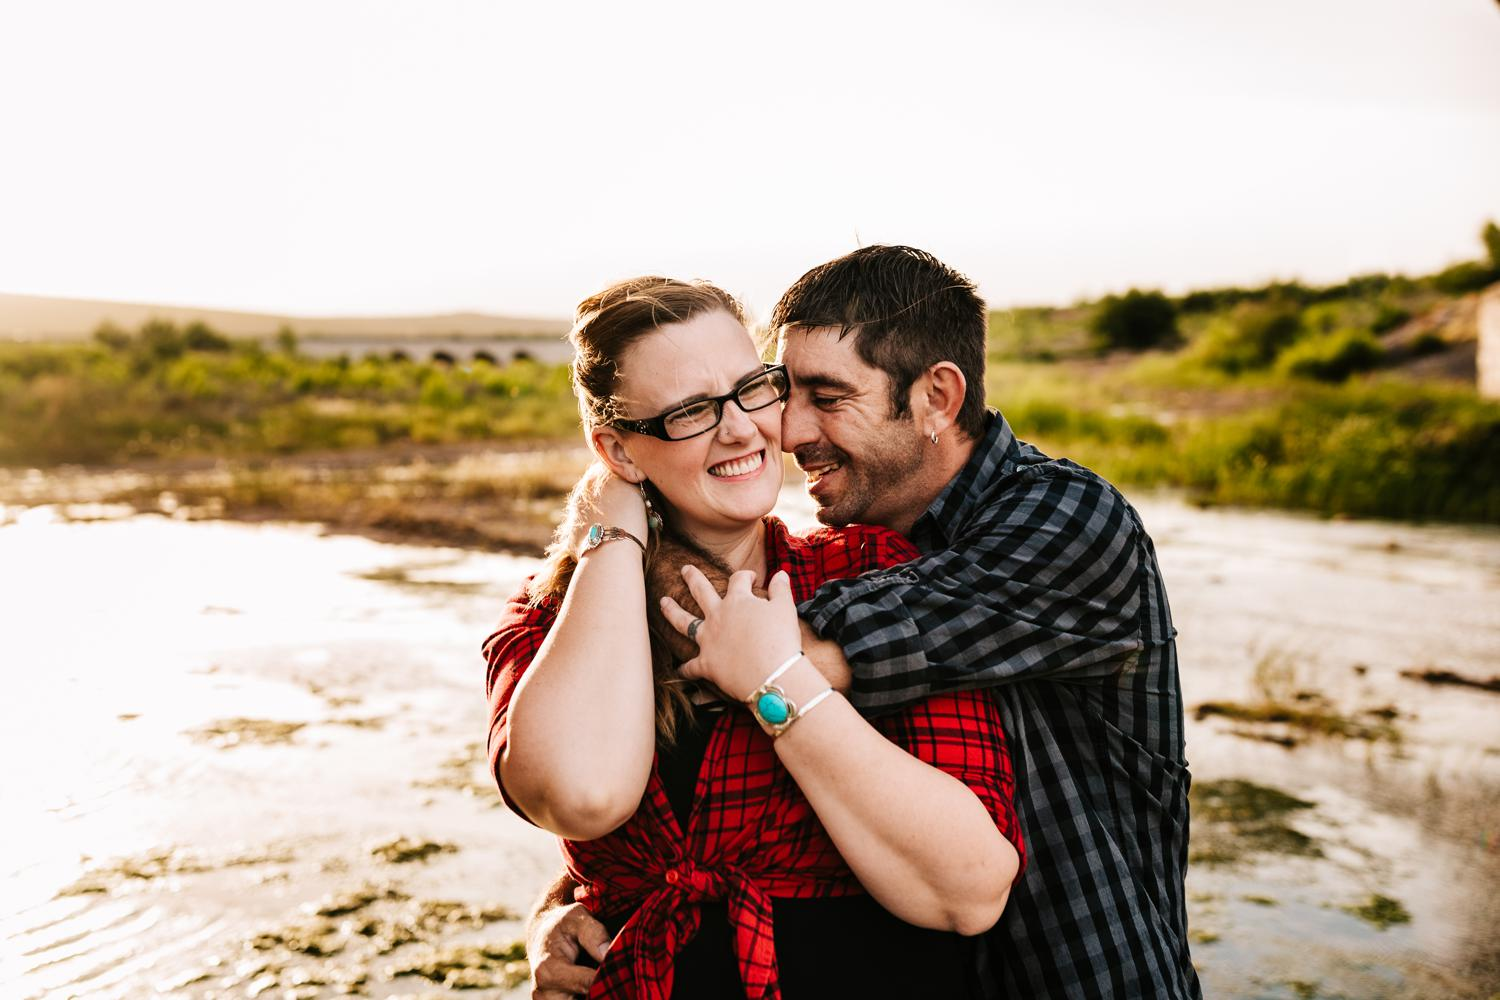 5. carlsbad-new-mexico-flumes-engagement-natural-wedding-photographer-andrea-van-orsouw-photography-fun-albuquerque3.jpg